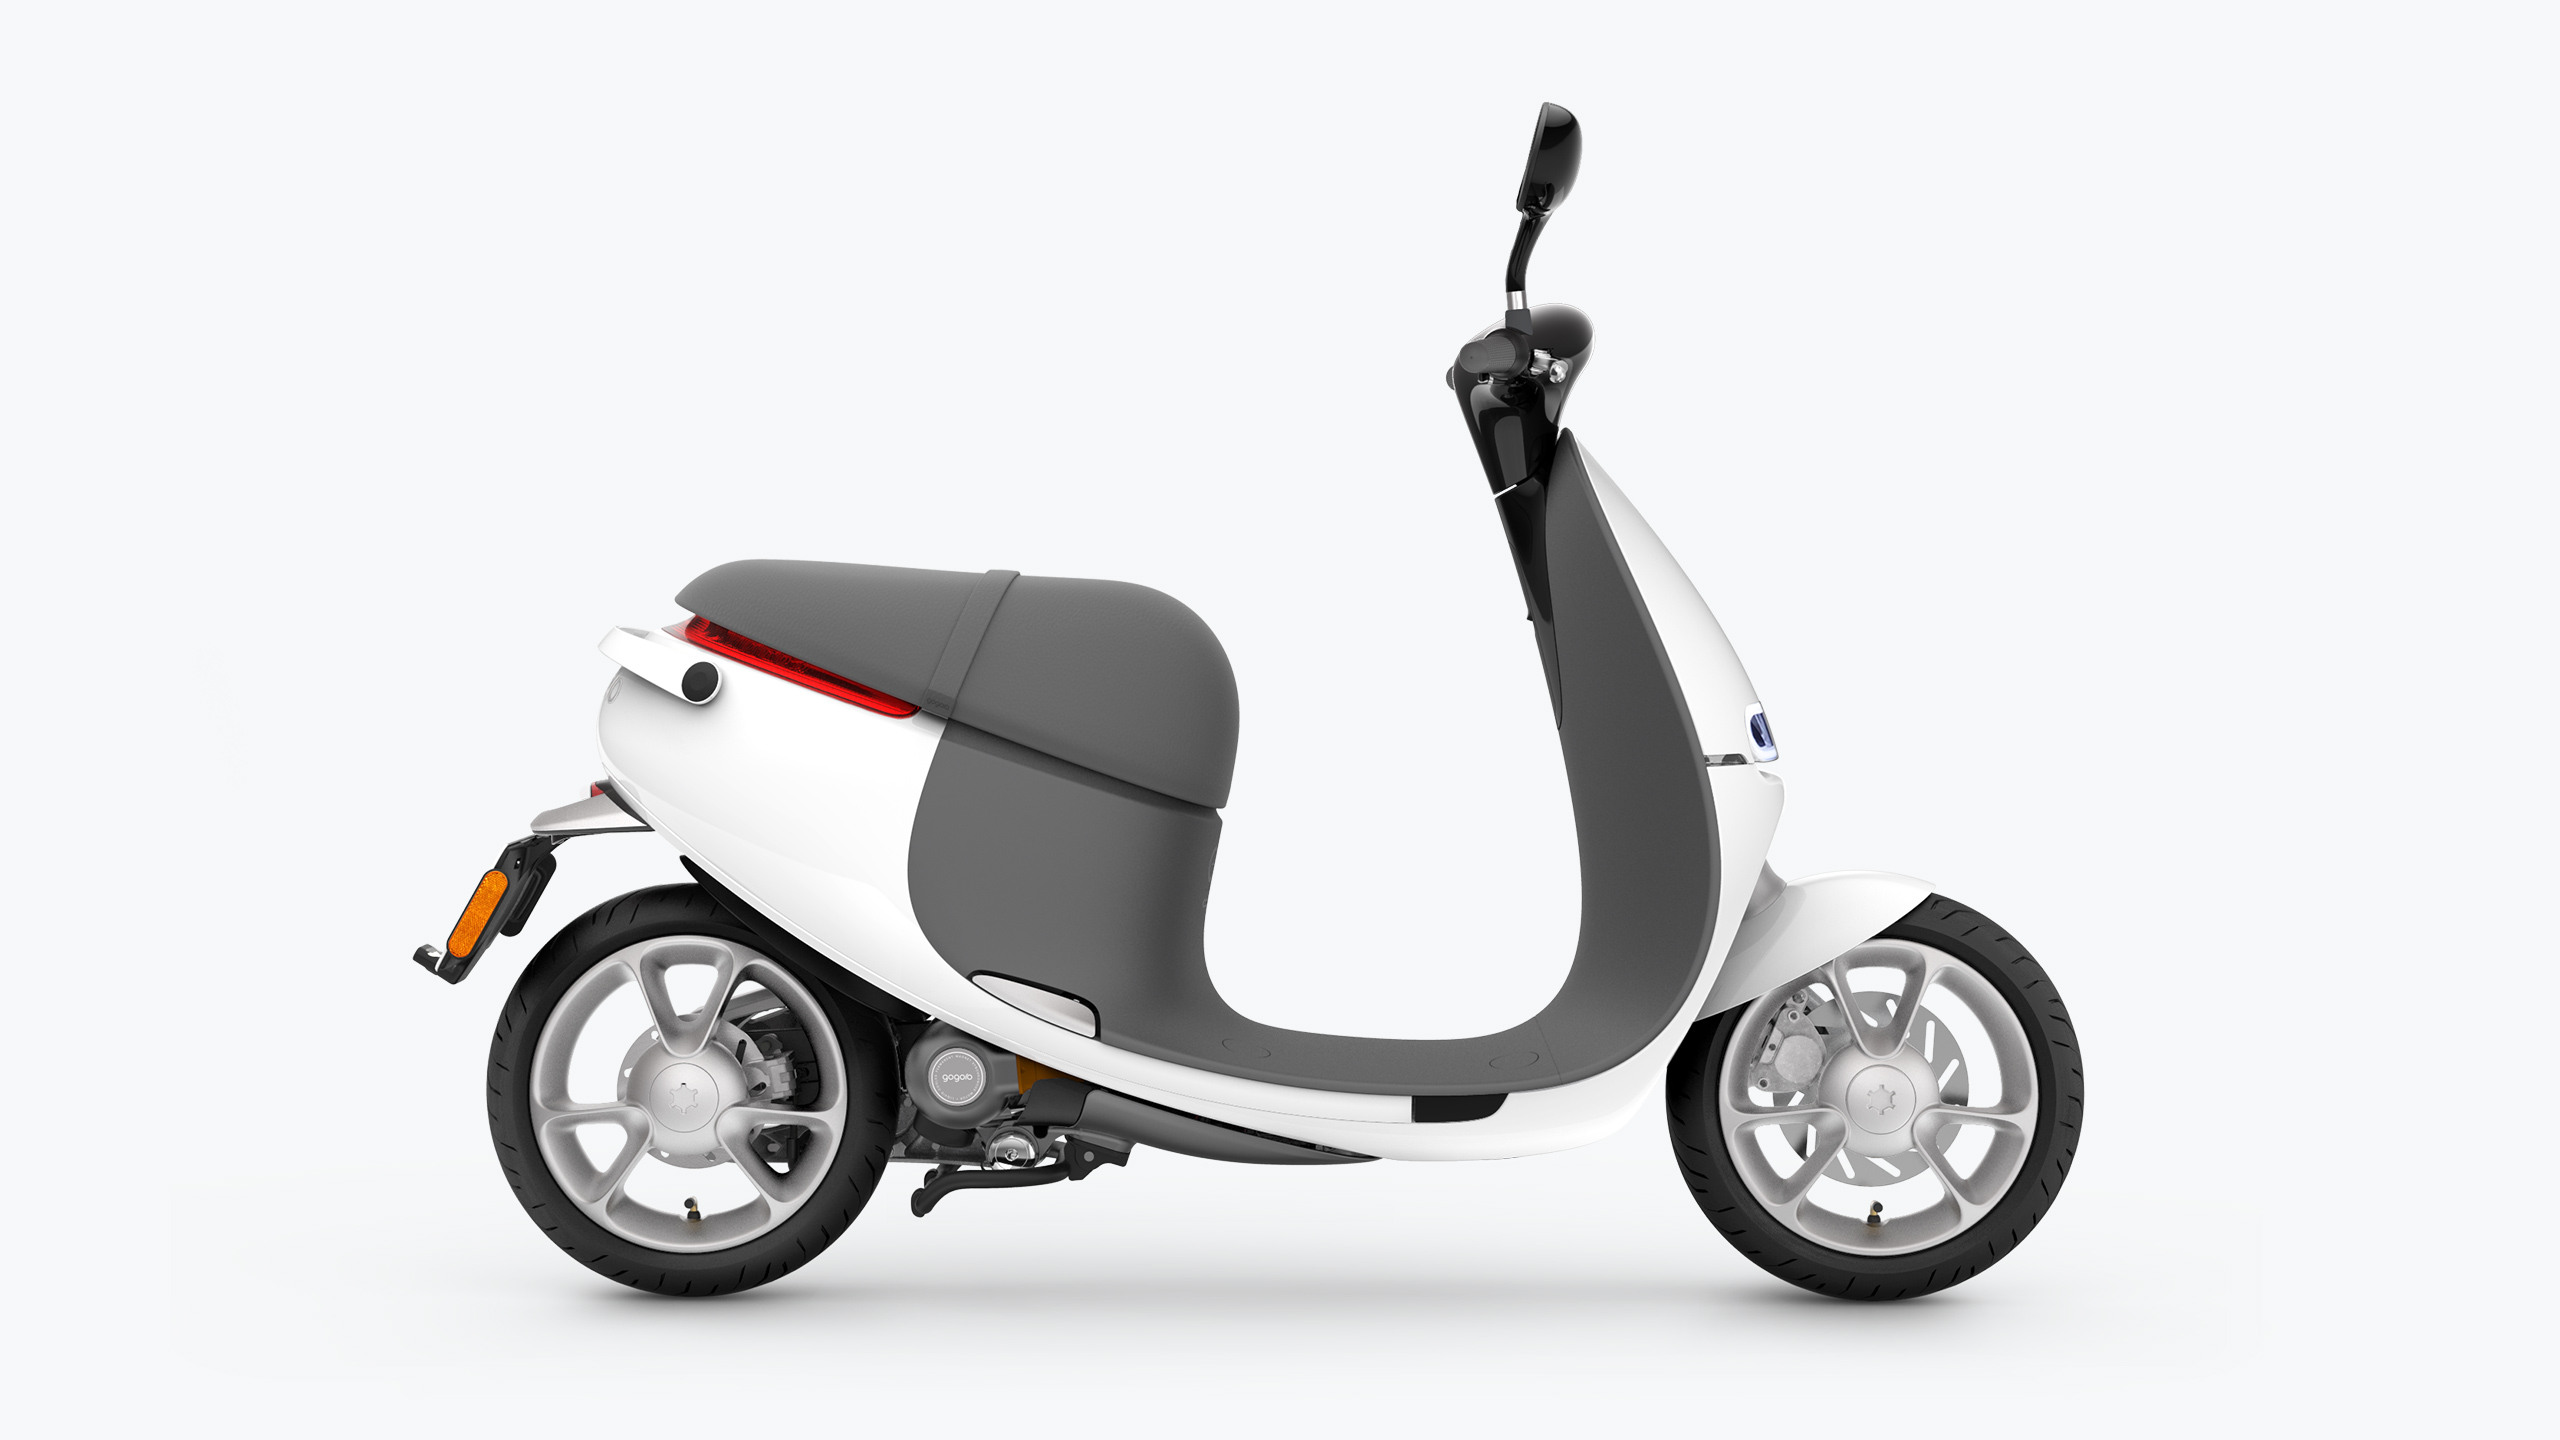 http://images.gogoroapp.com/store/upload/scooter/scooter_gogoro_lite_color_white_02&03.jpg